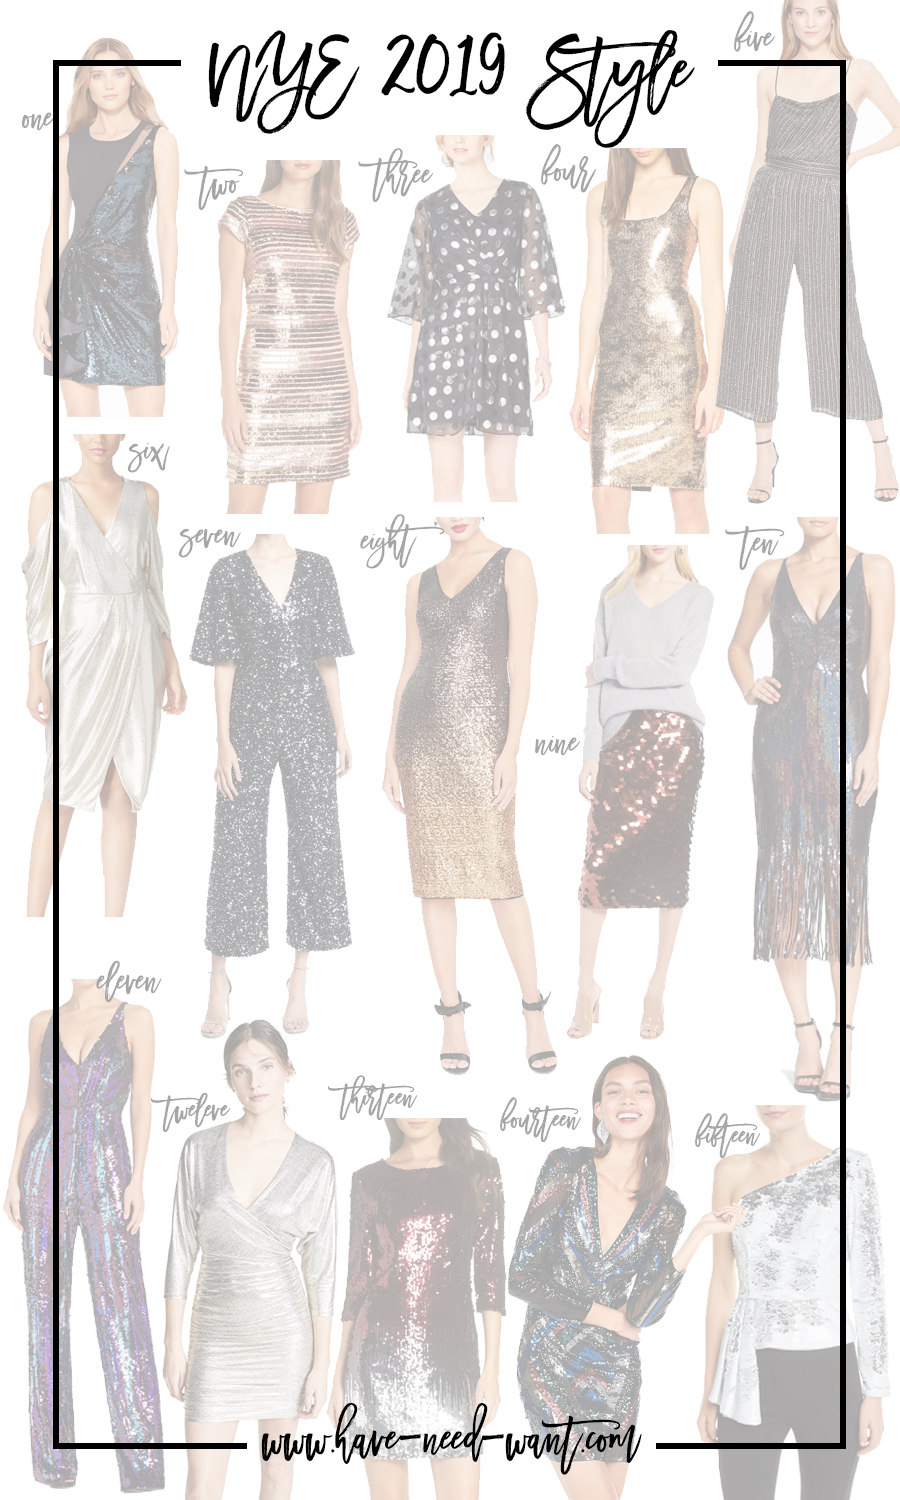 15 Fabulous NYE Outfit Ideas to Help You Ring in the New Year in Style   Have Need Want #NYEDress #NYEOutfits #NYEStyle #NewYearEve2019